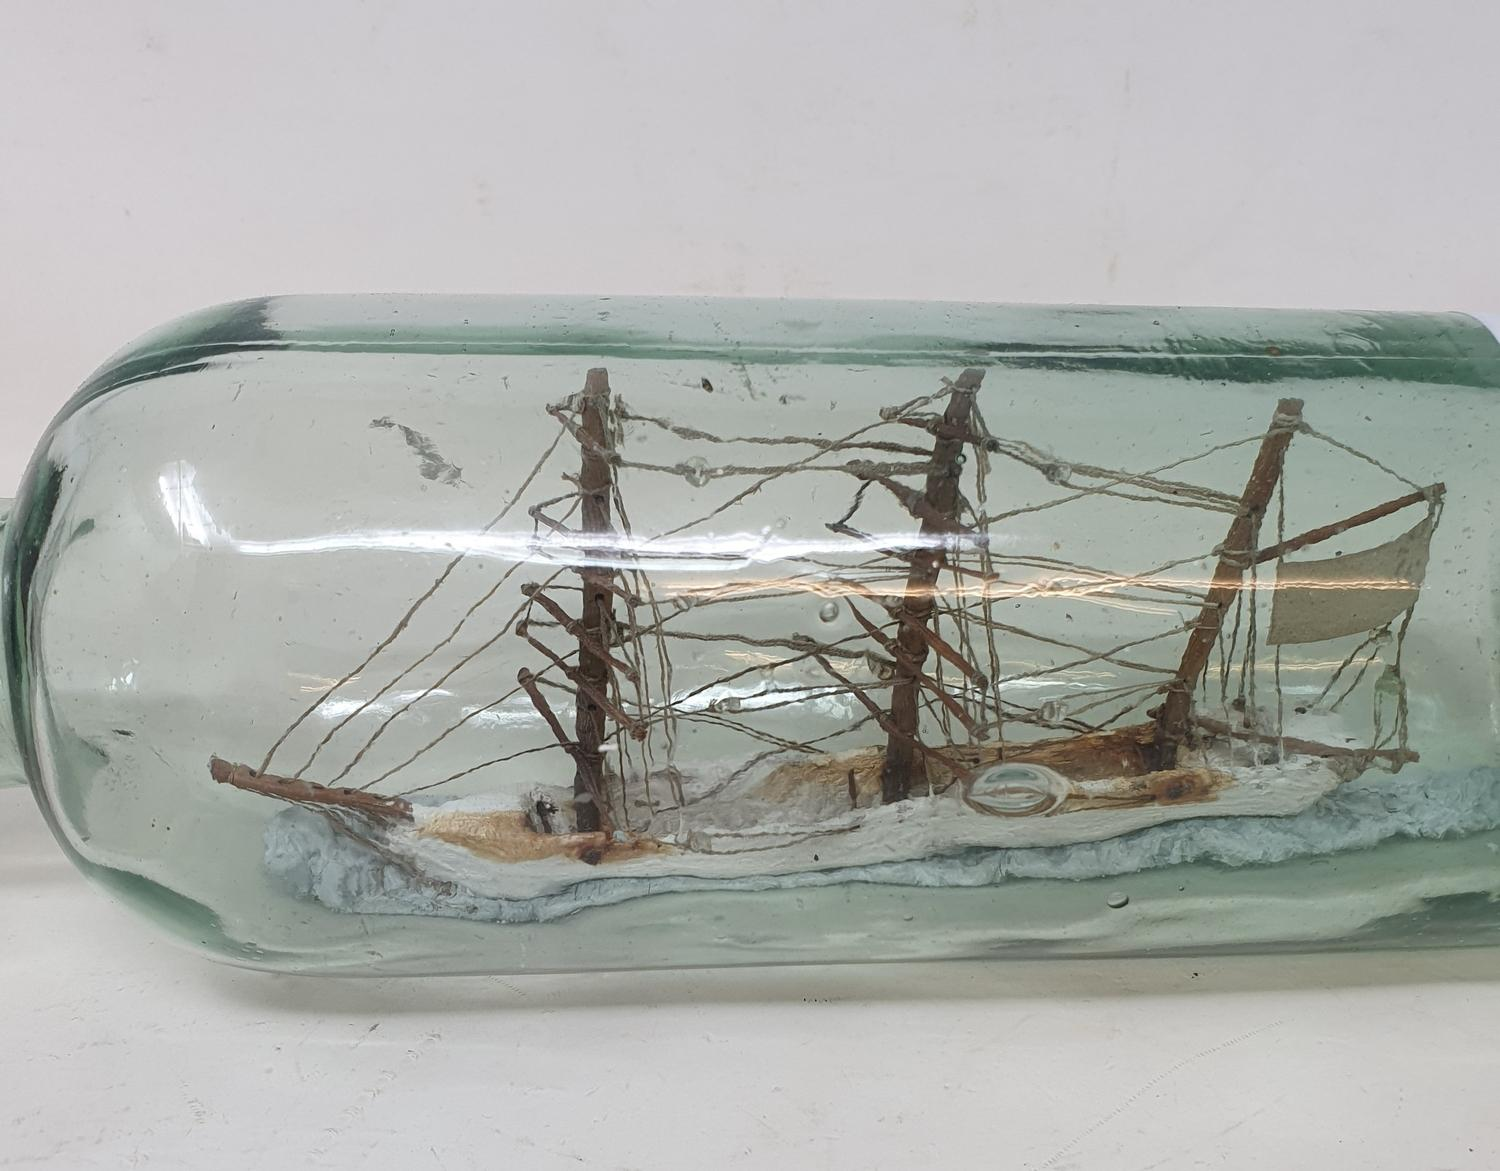 A ship in a bottle, 31 cm wide - Image 2 of 2